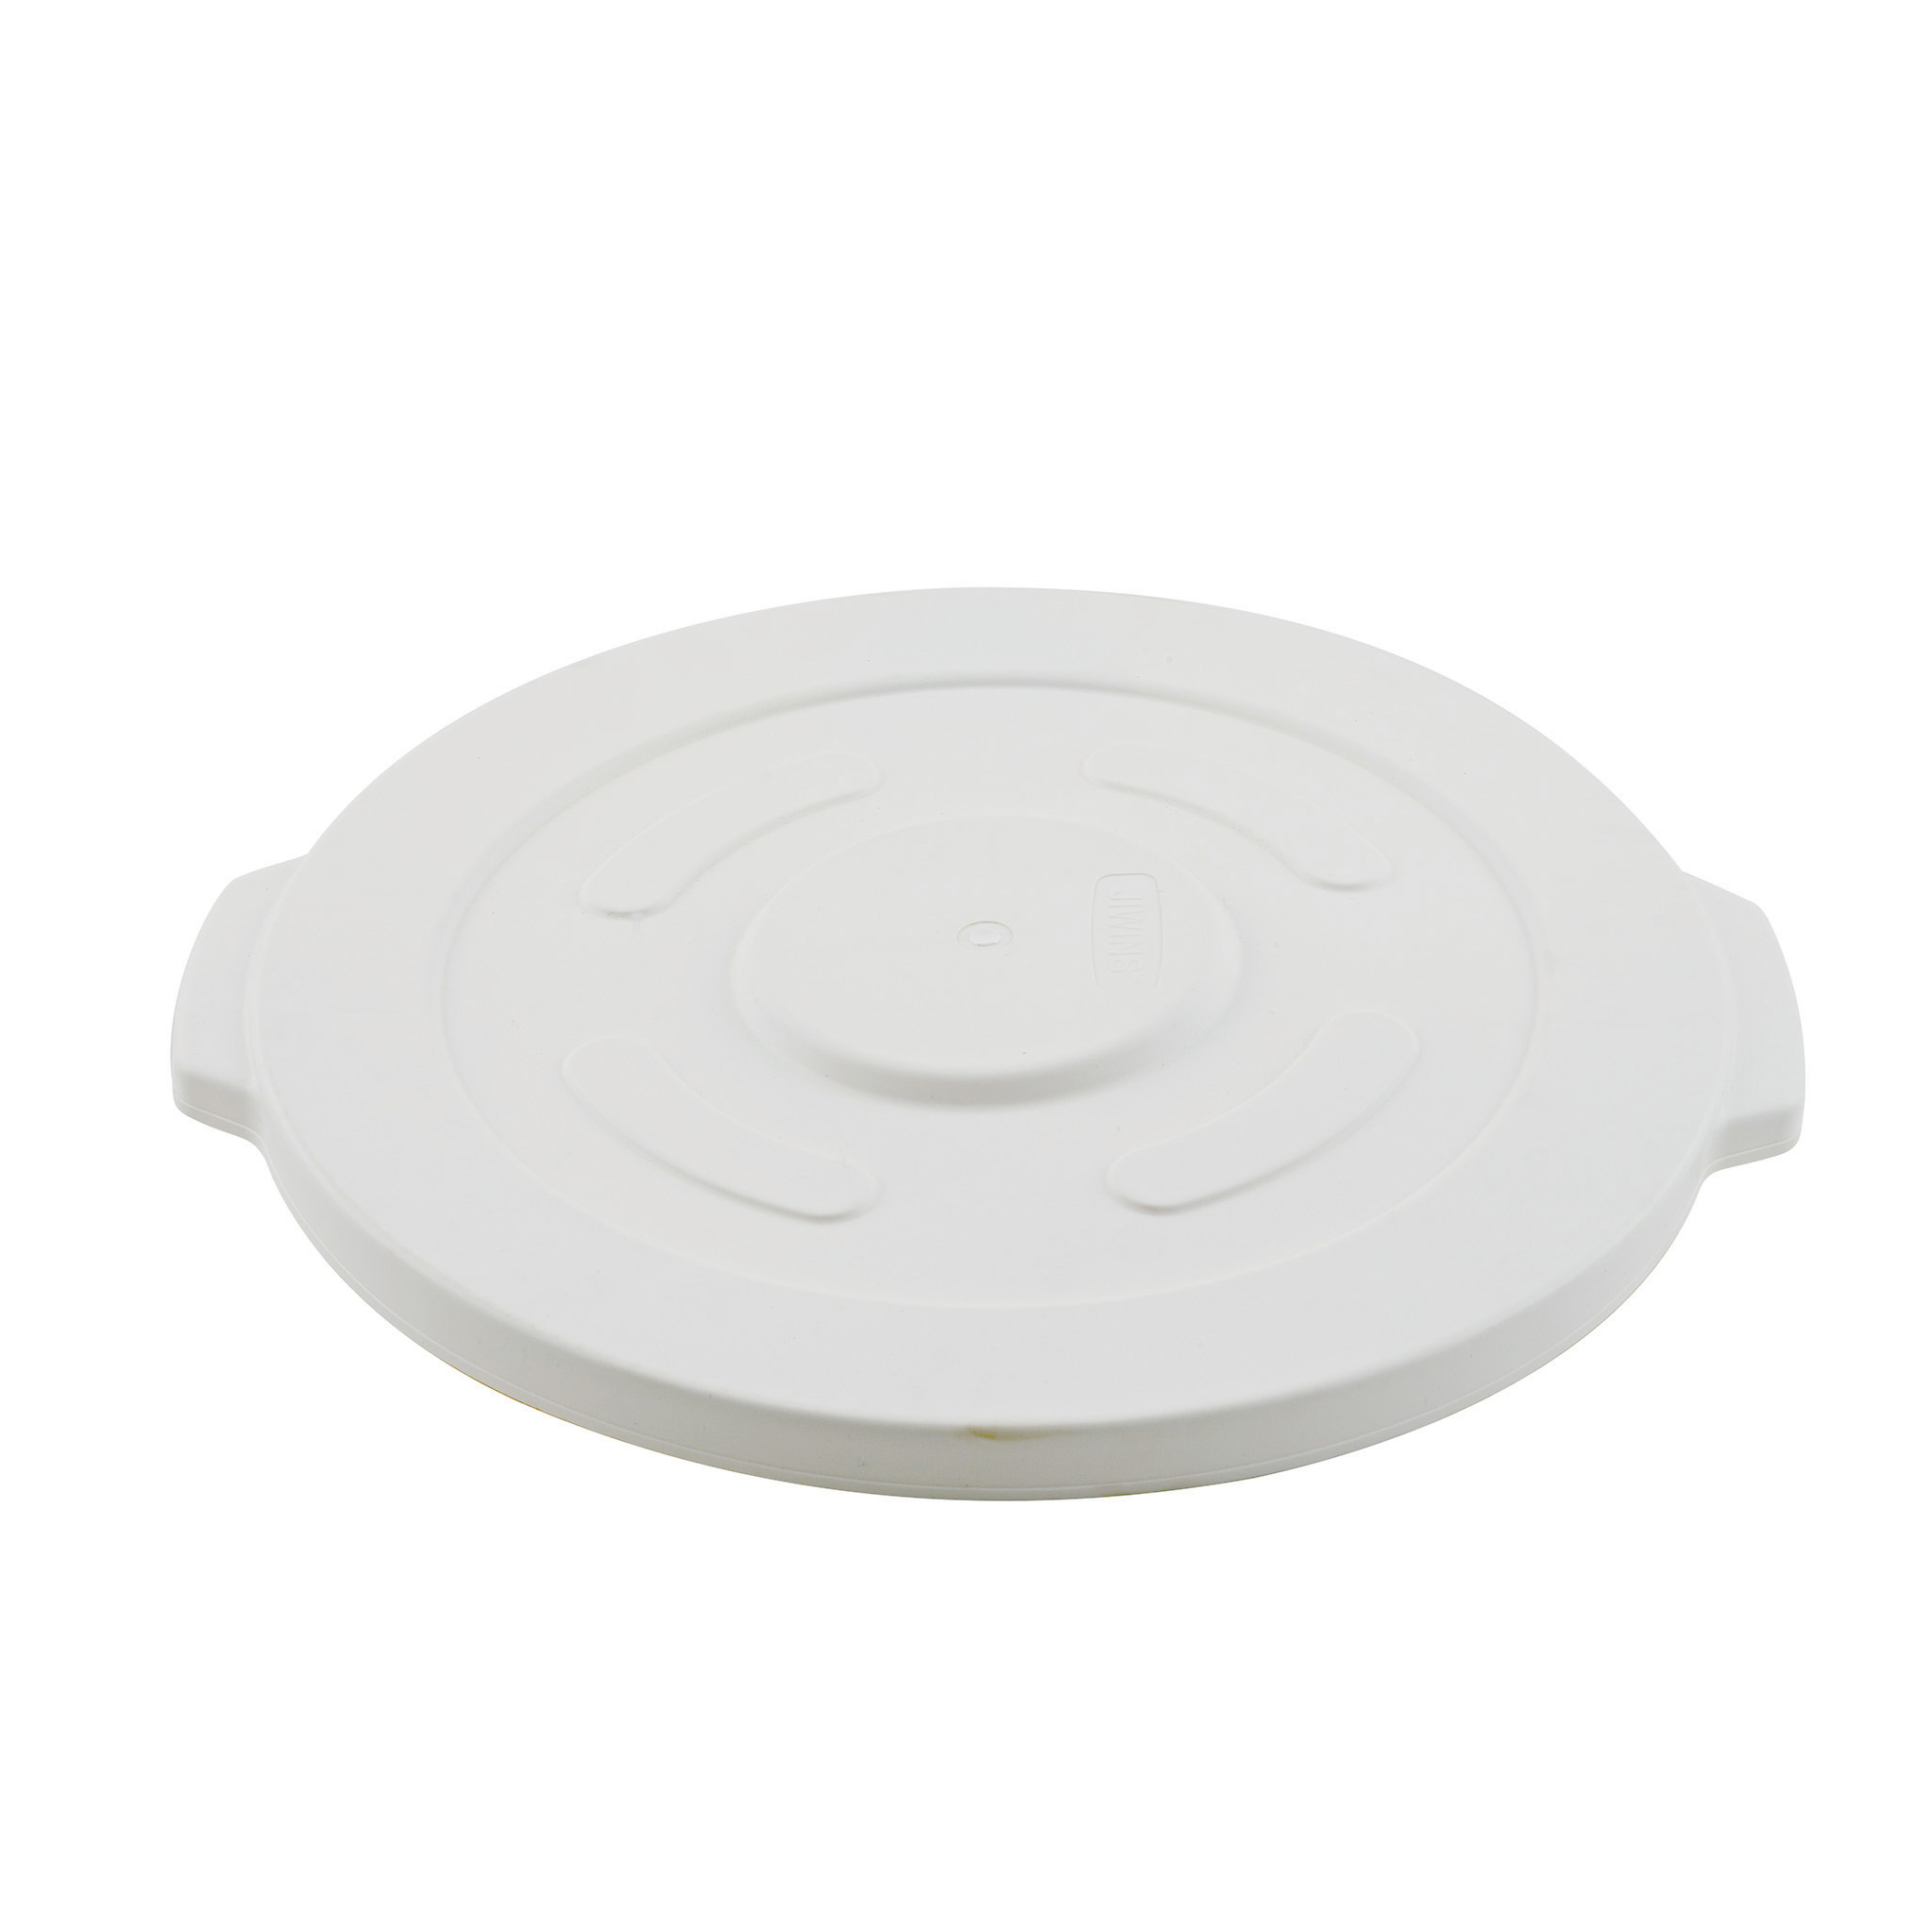 Winco FCW-32L trash receptacle lid / top